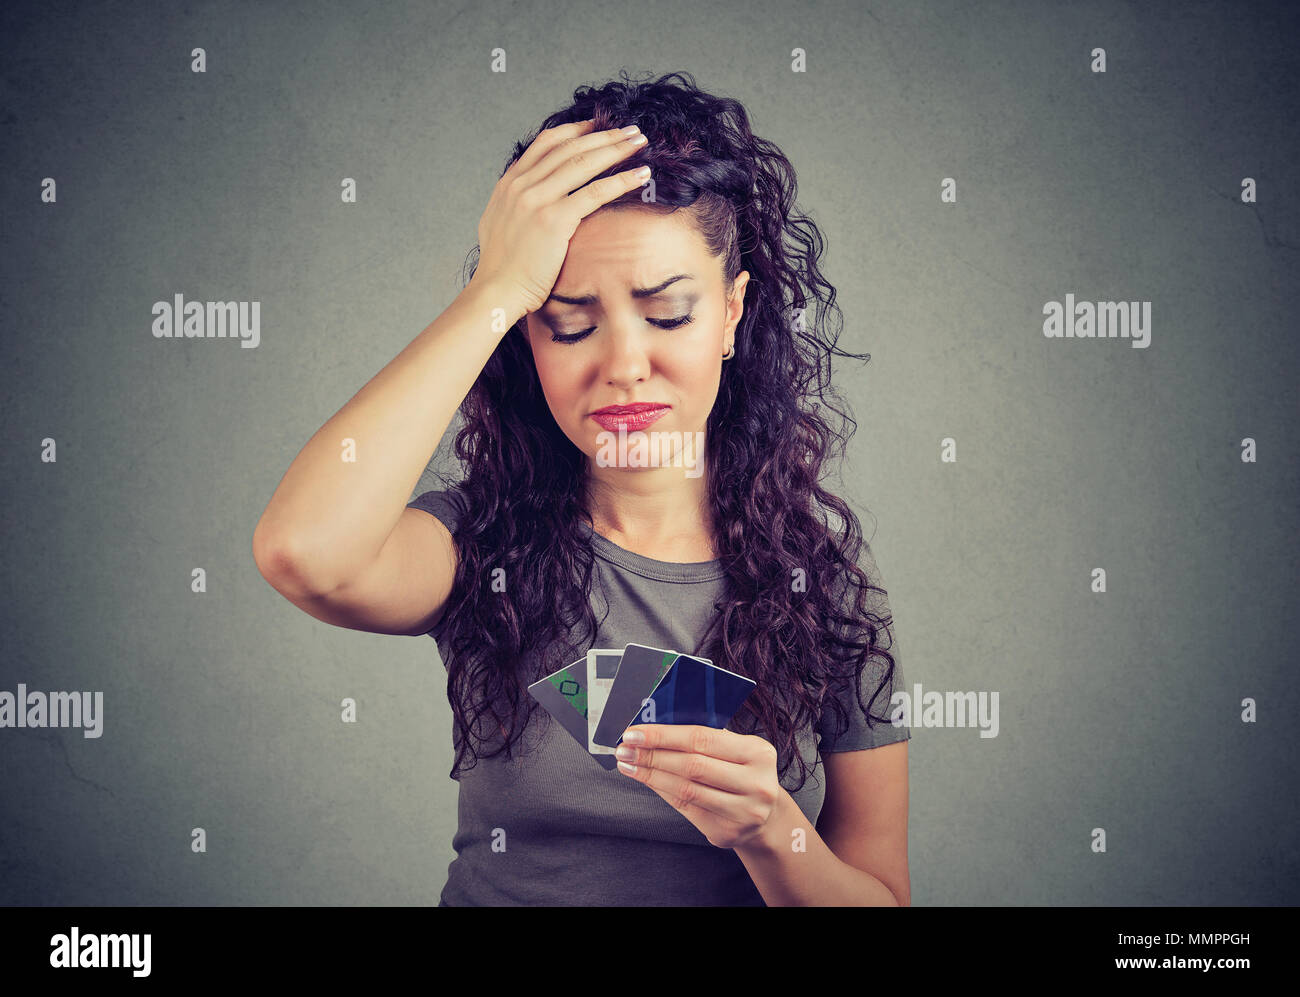 Confused stressed woman looking at too many credit cards - Stock Image